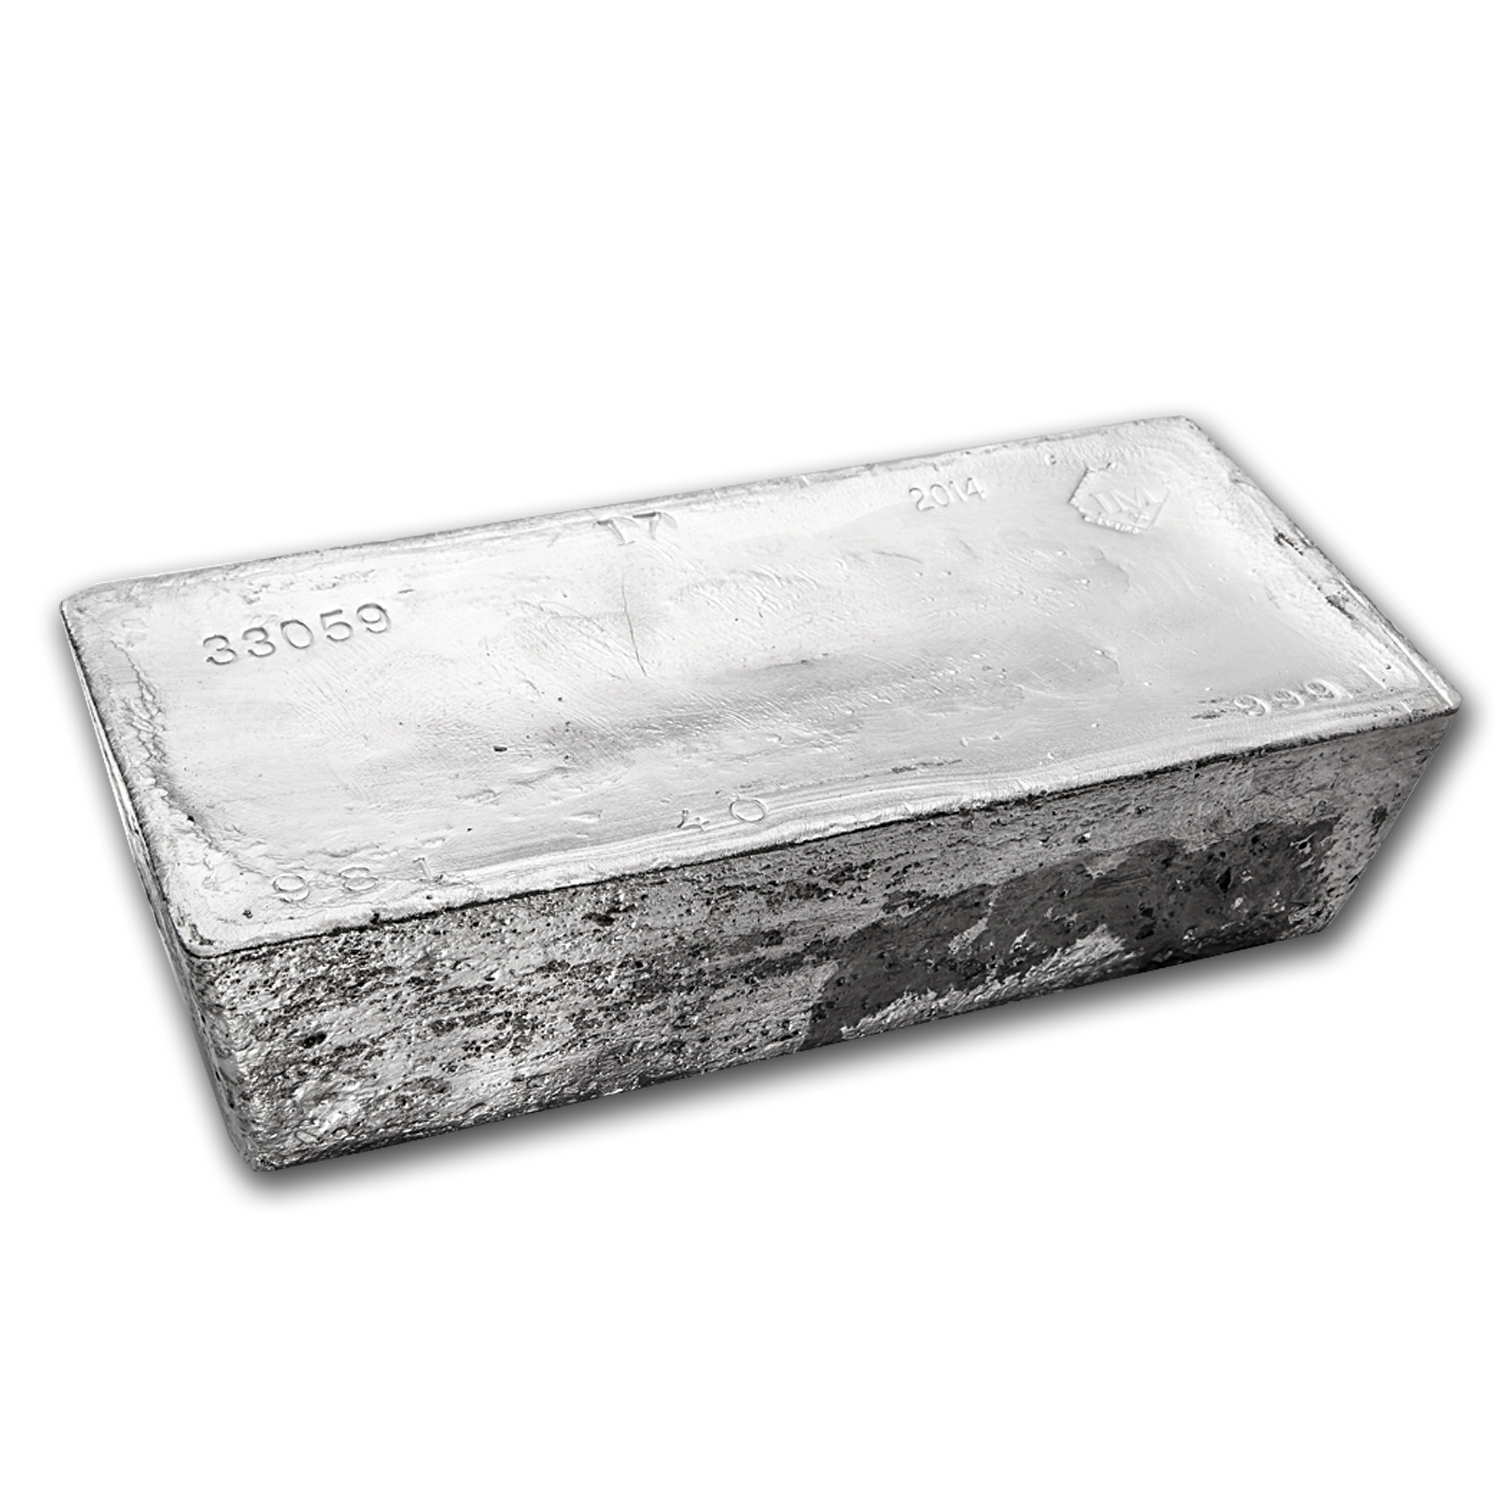 974.30 oz Silver Bar - Johnson Matthey